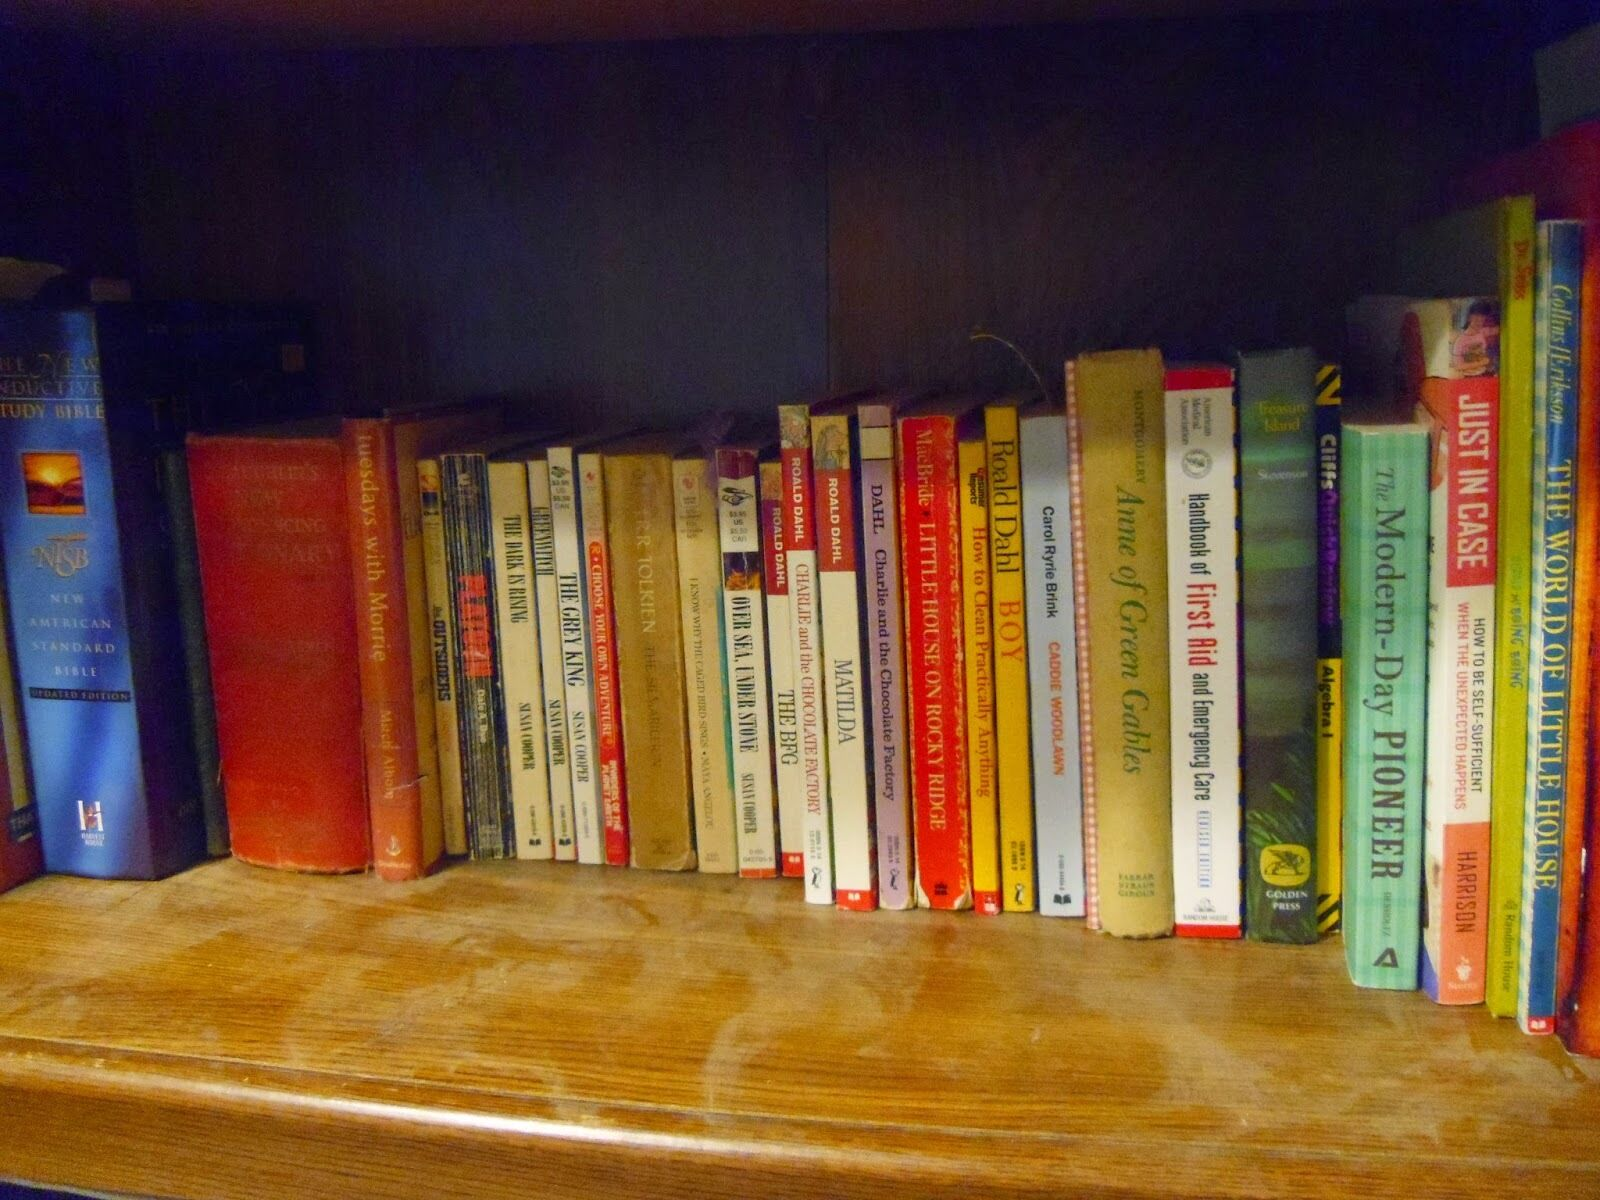 Erica's Books and More